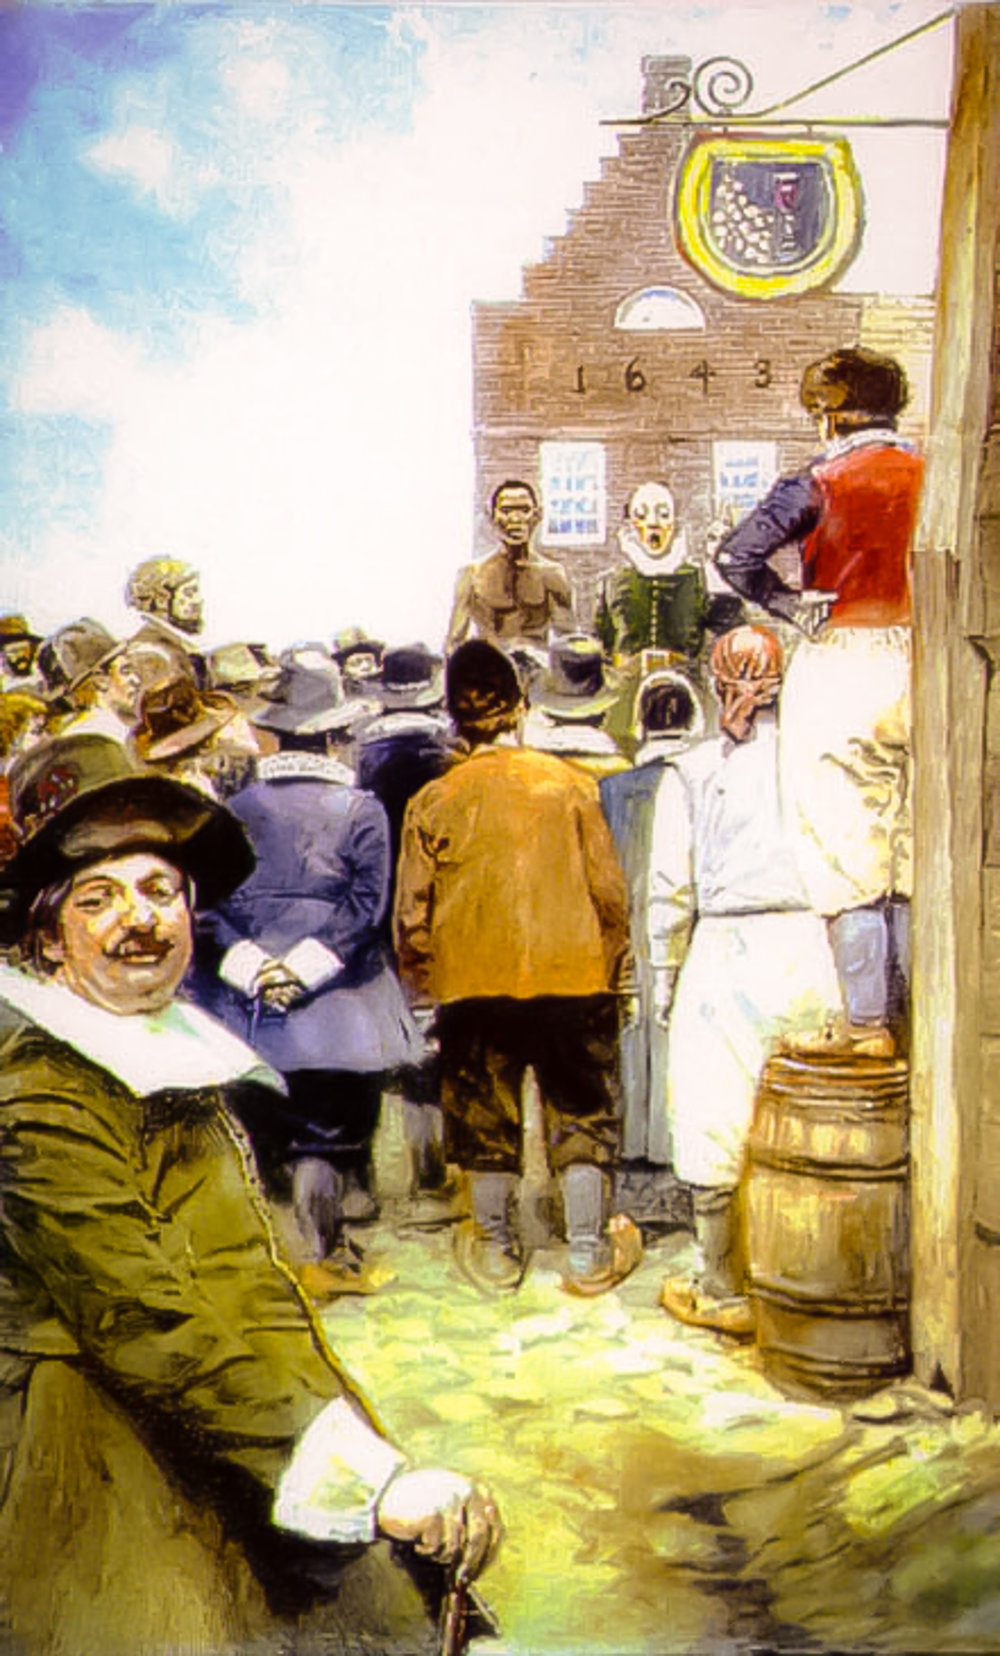 The New York City slave market in New Amsterdam in 1655 (illustration by Howard Pyle from 1917, via  Wikimedia ) (click to enlarge)